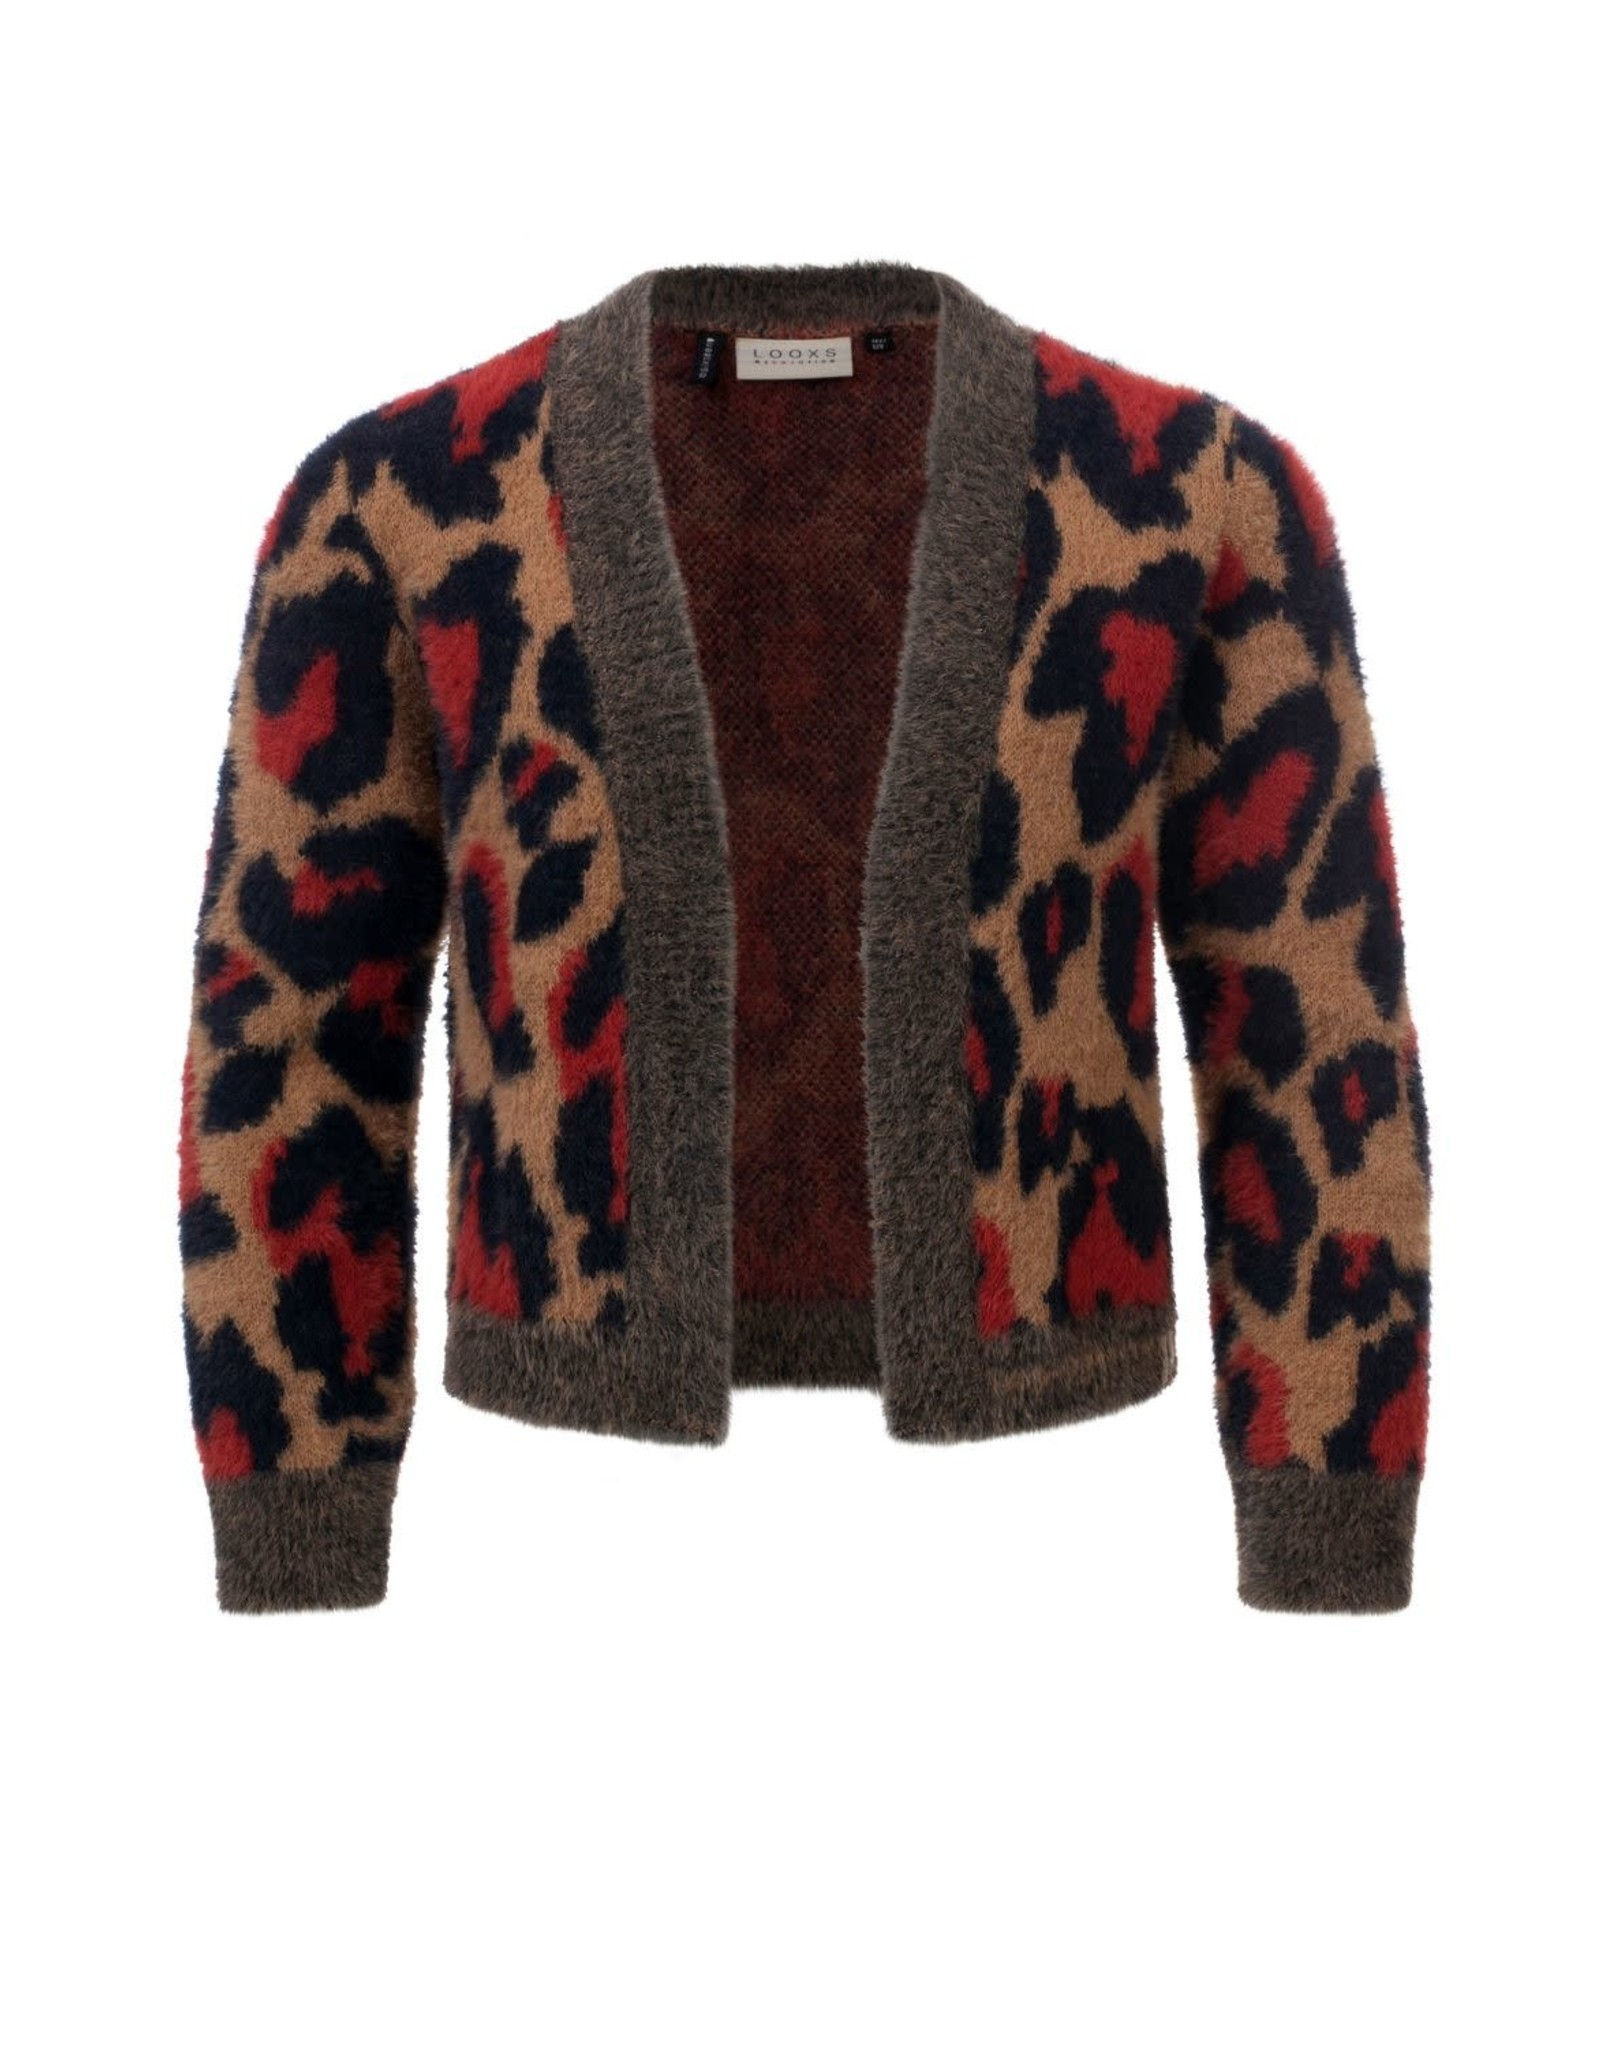 Looxs Girls knitted cardigan Camel